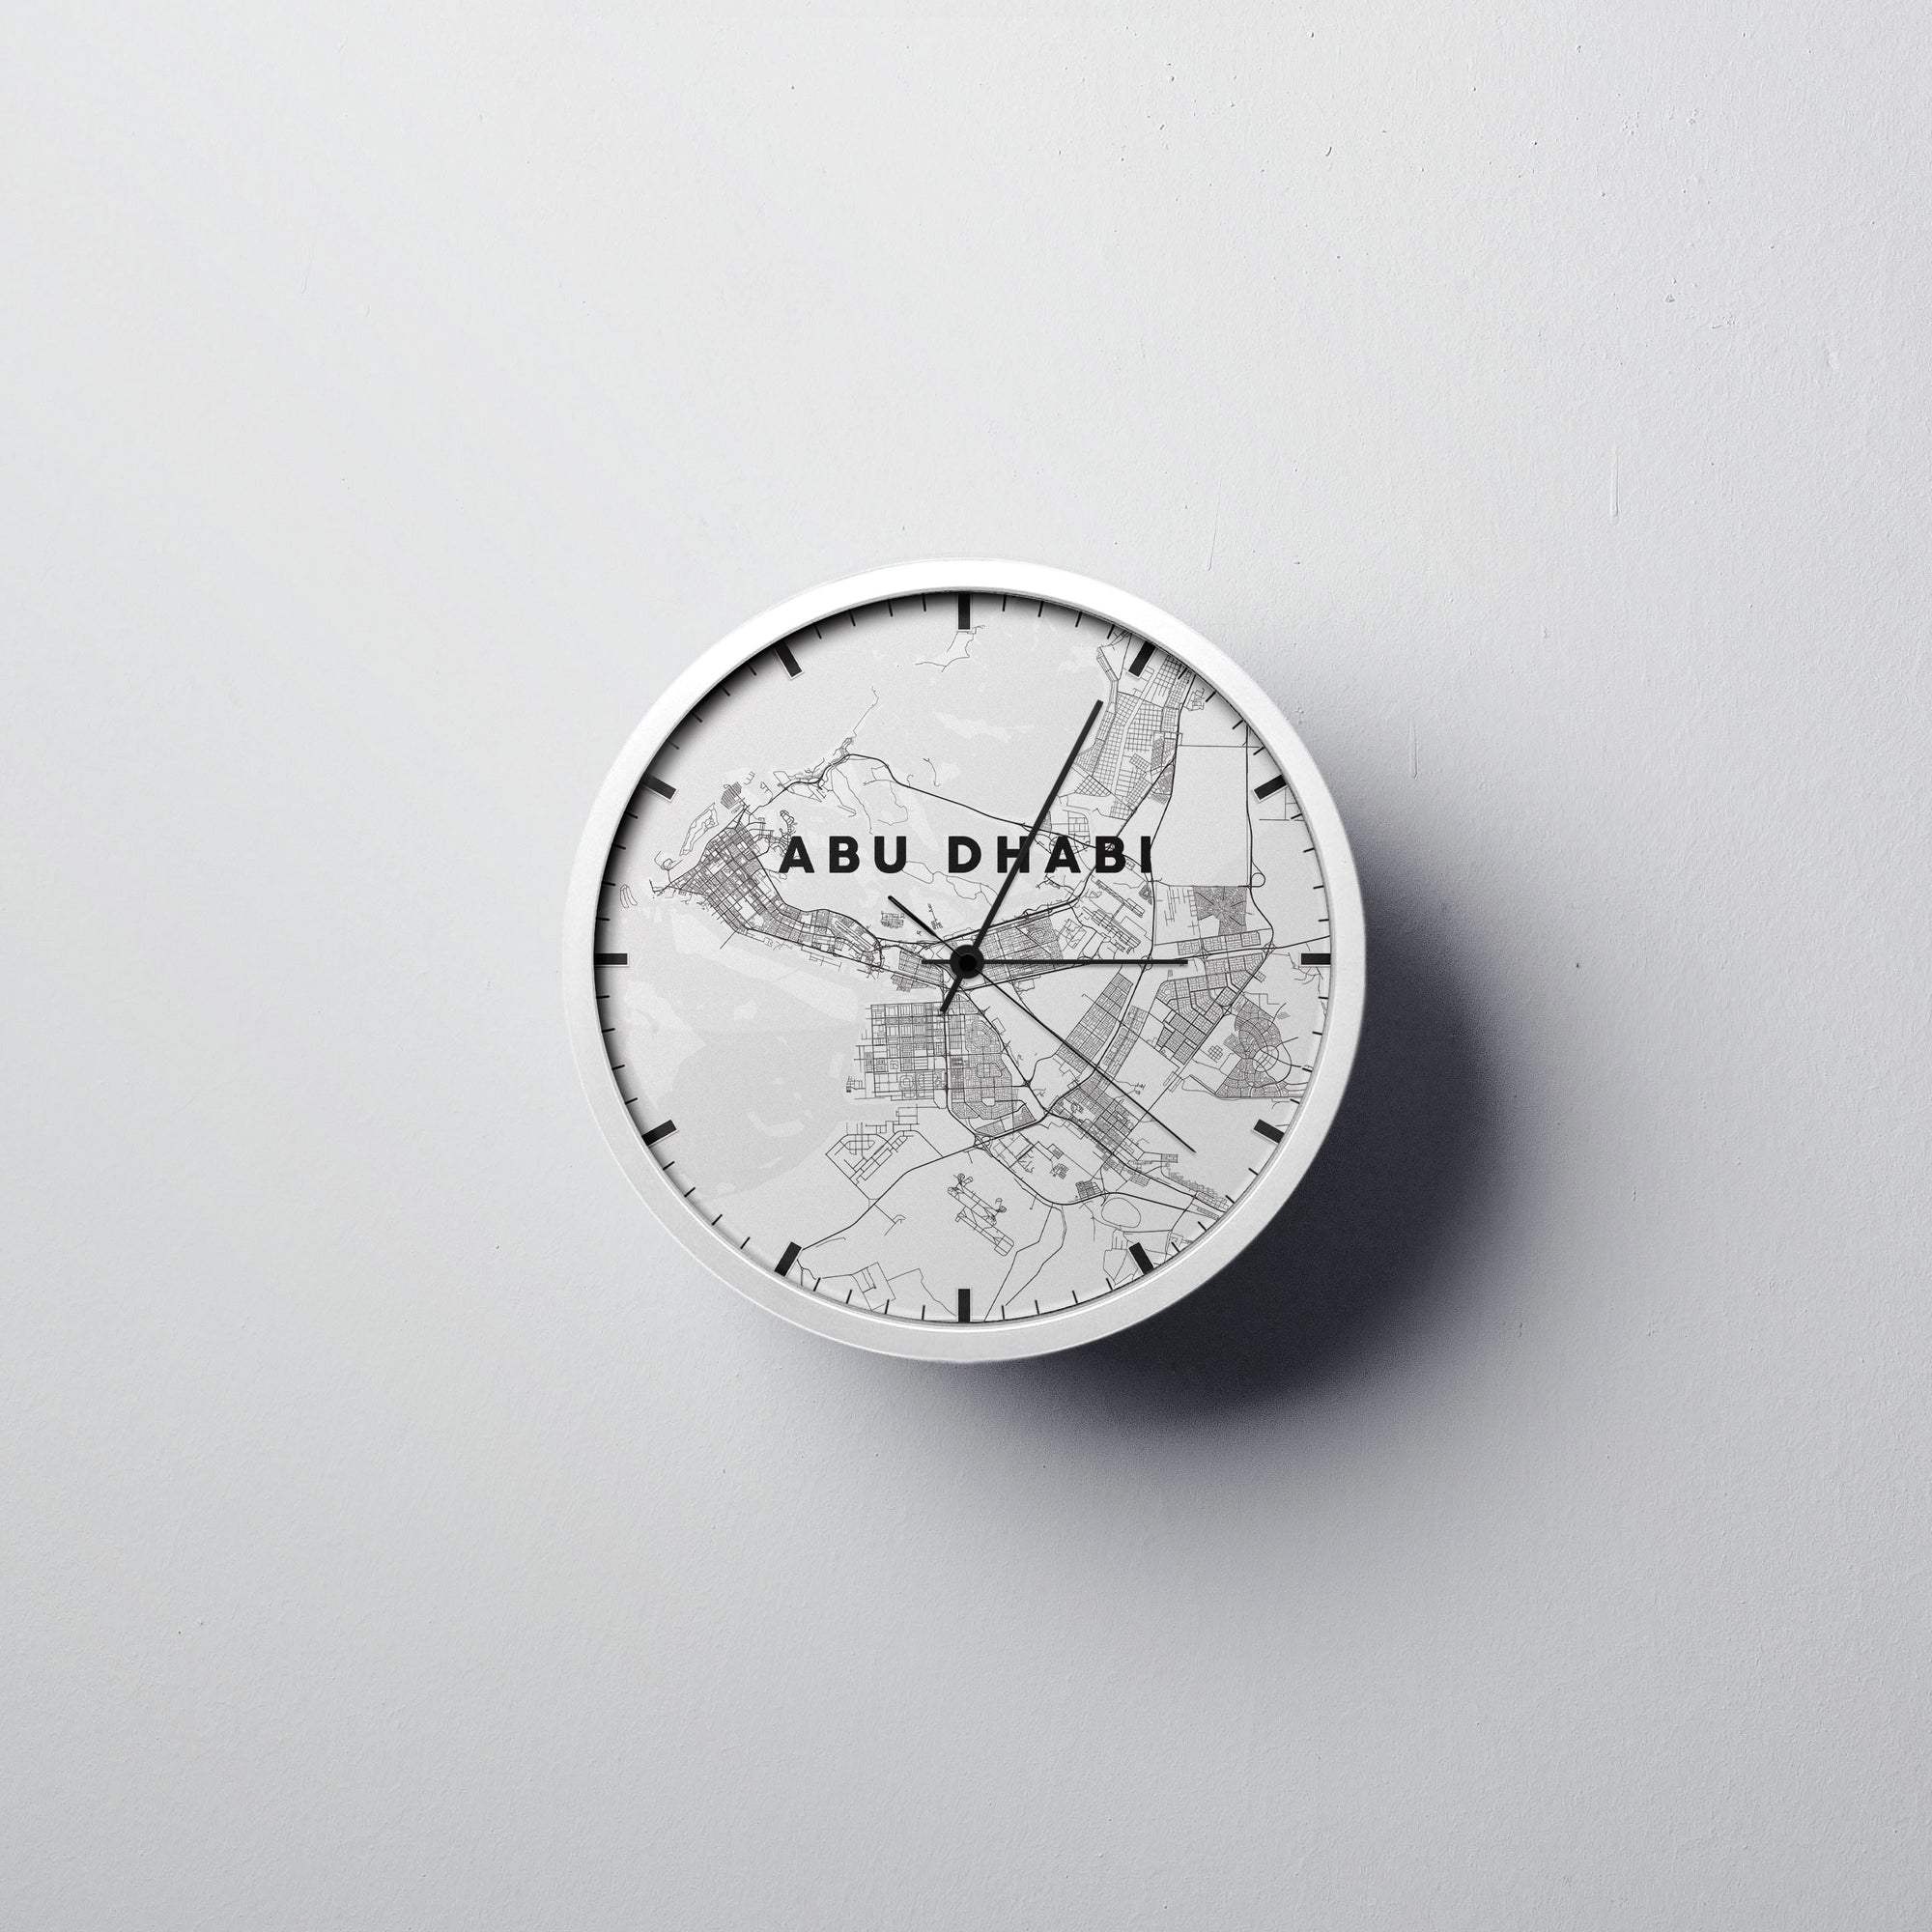 Abu Dhabi Wall Clock - Point Two Design